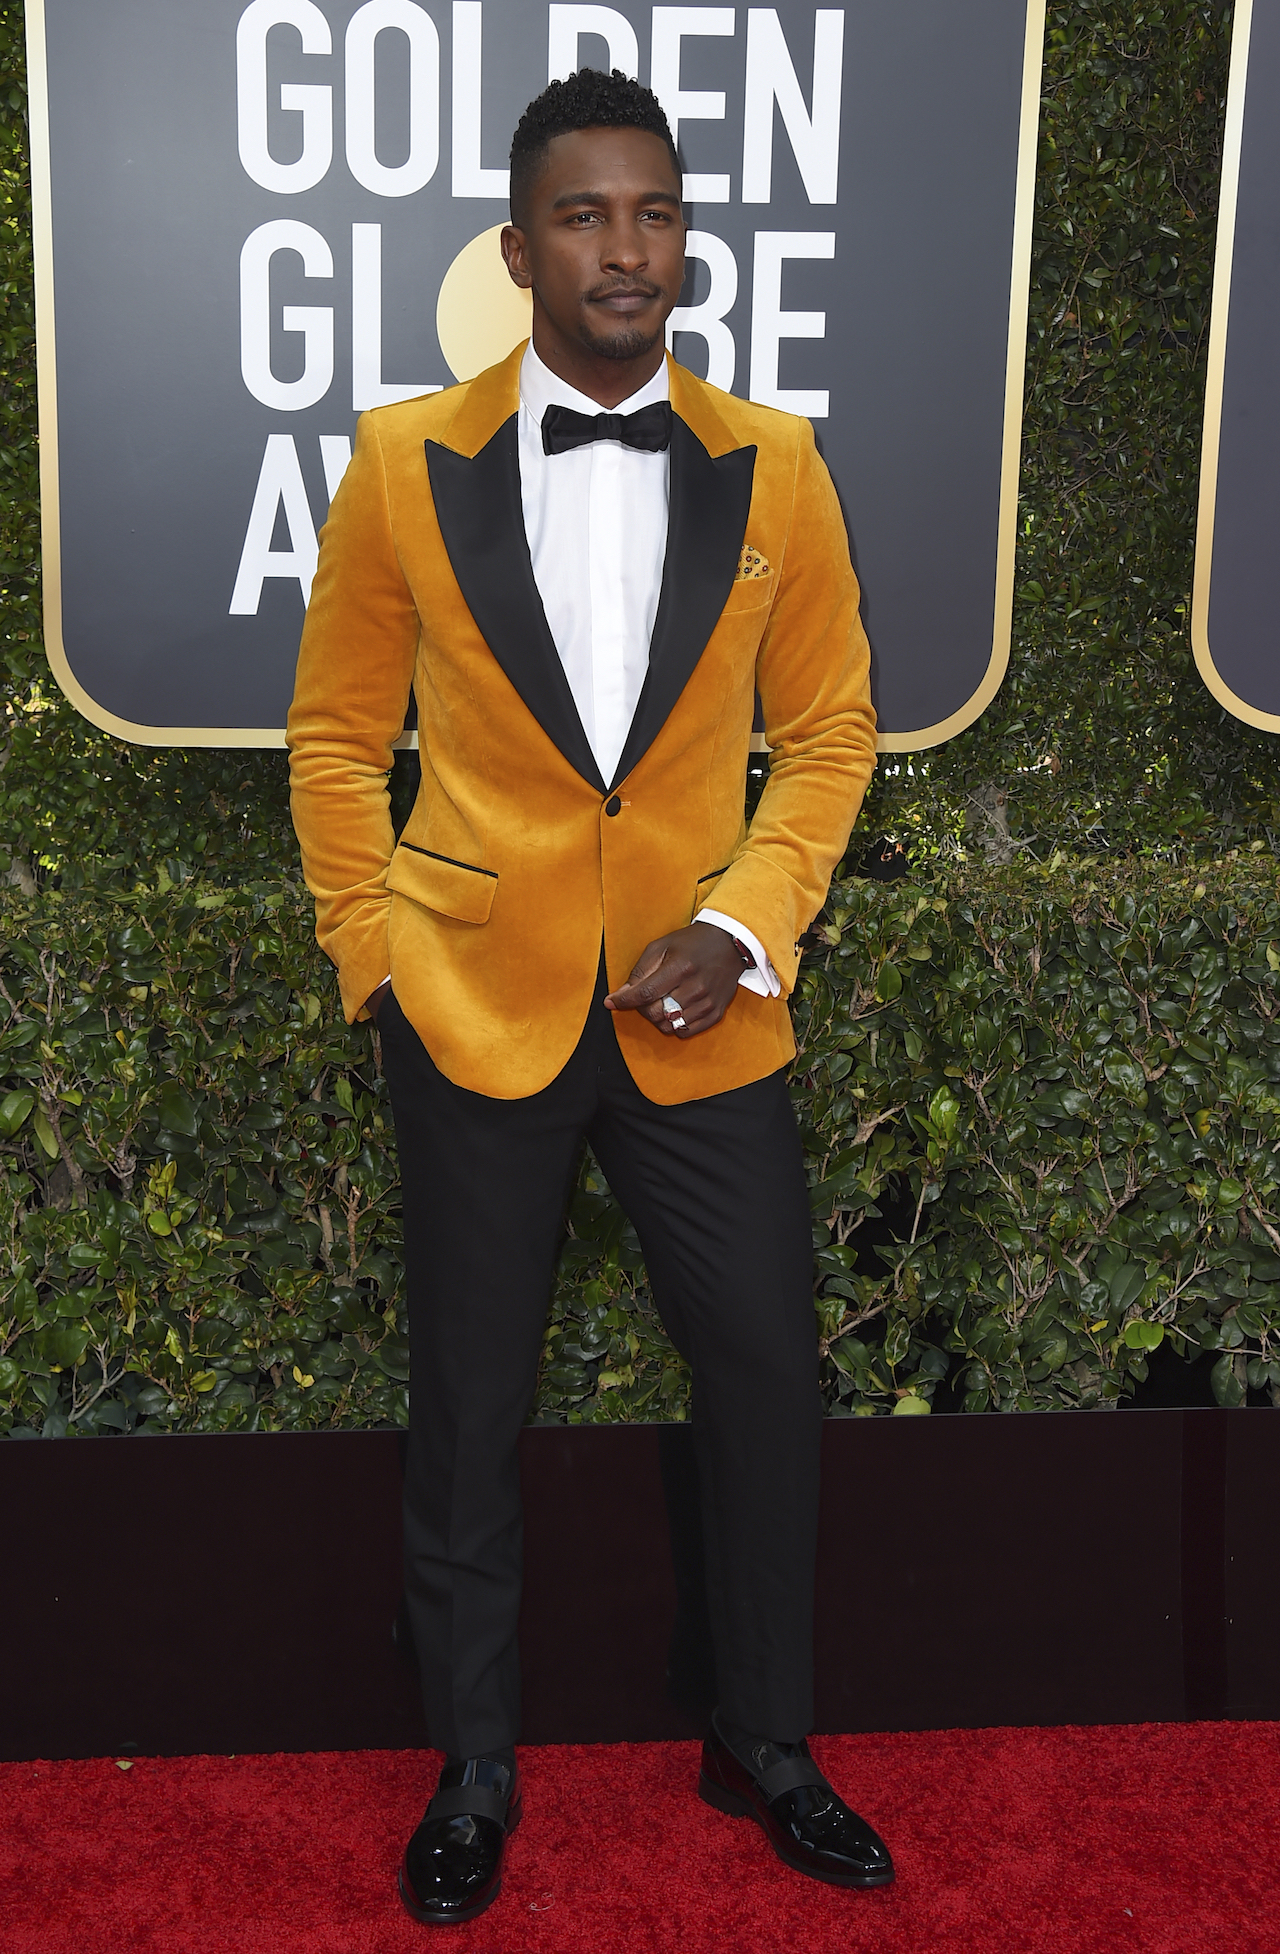 "<div class=""meta image-caption""><div class=""origin-logo origin-image ap""><span>AP</span></div><span class=""caption-text"">Scott Evans arrives at the 76th annual Golden Globe Awards at the Beverly Hilton Hotel on Sunday, Jan. 6, 2019, in Beverly Hills, Calif. (Jordan Strauss/Invision/AP)</span></div>"